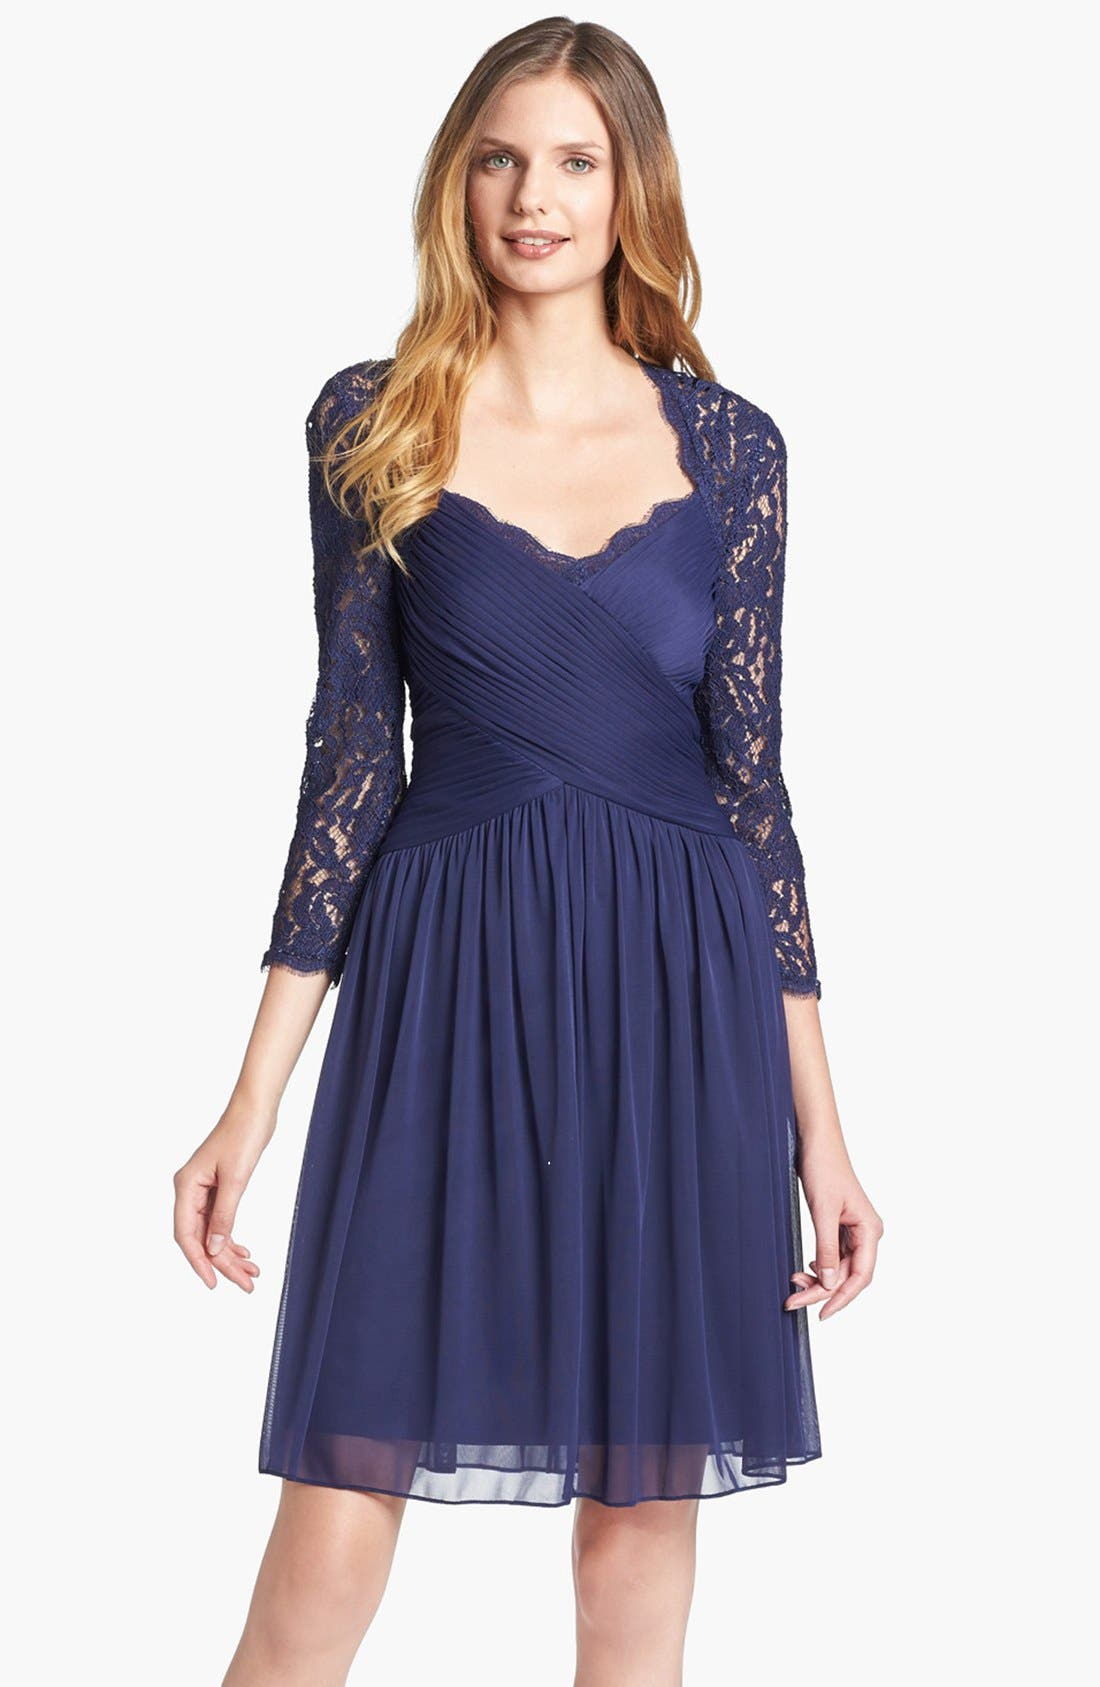 Main Image - Adrianna Papell Lace Sleeve Mesh Fit & Flare Dress